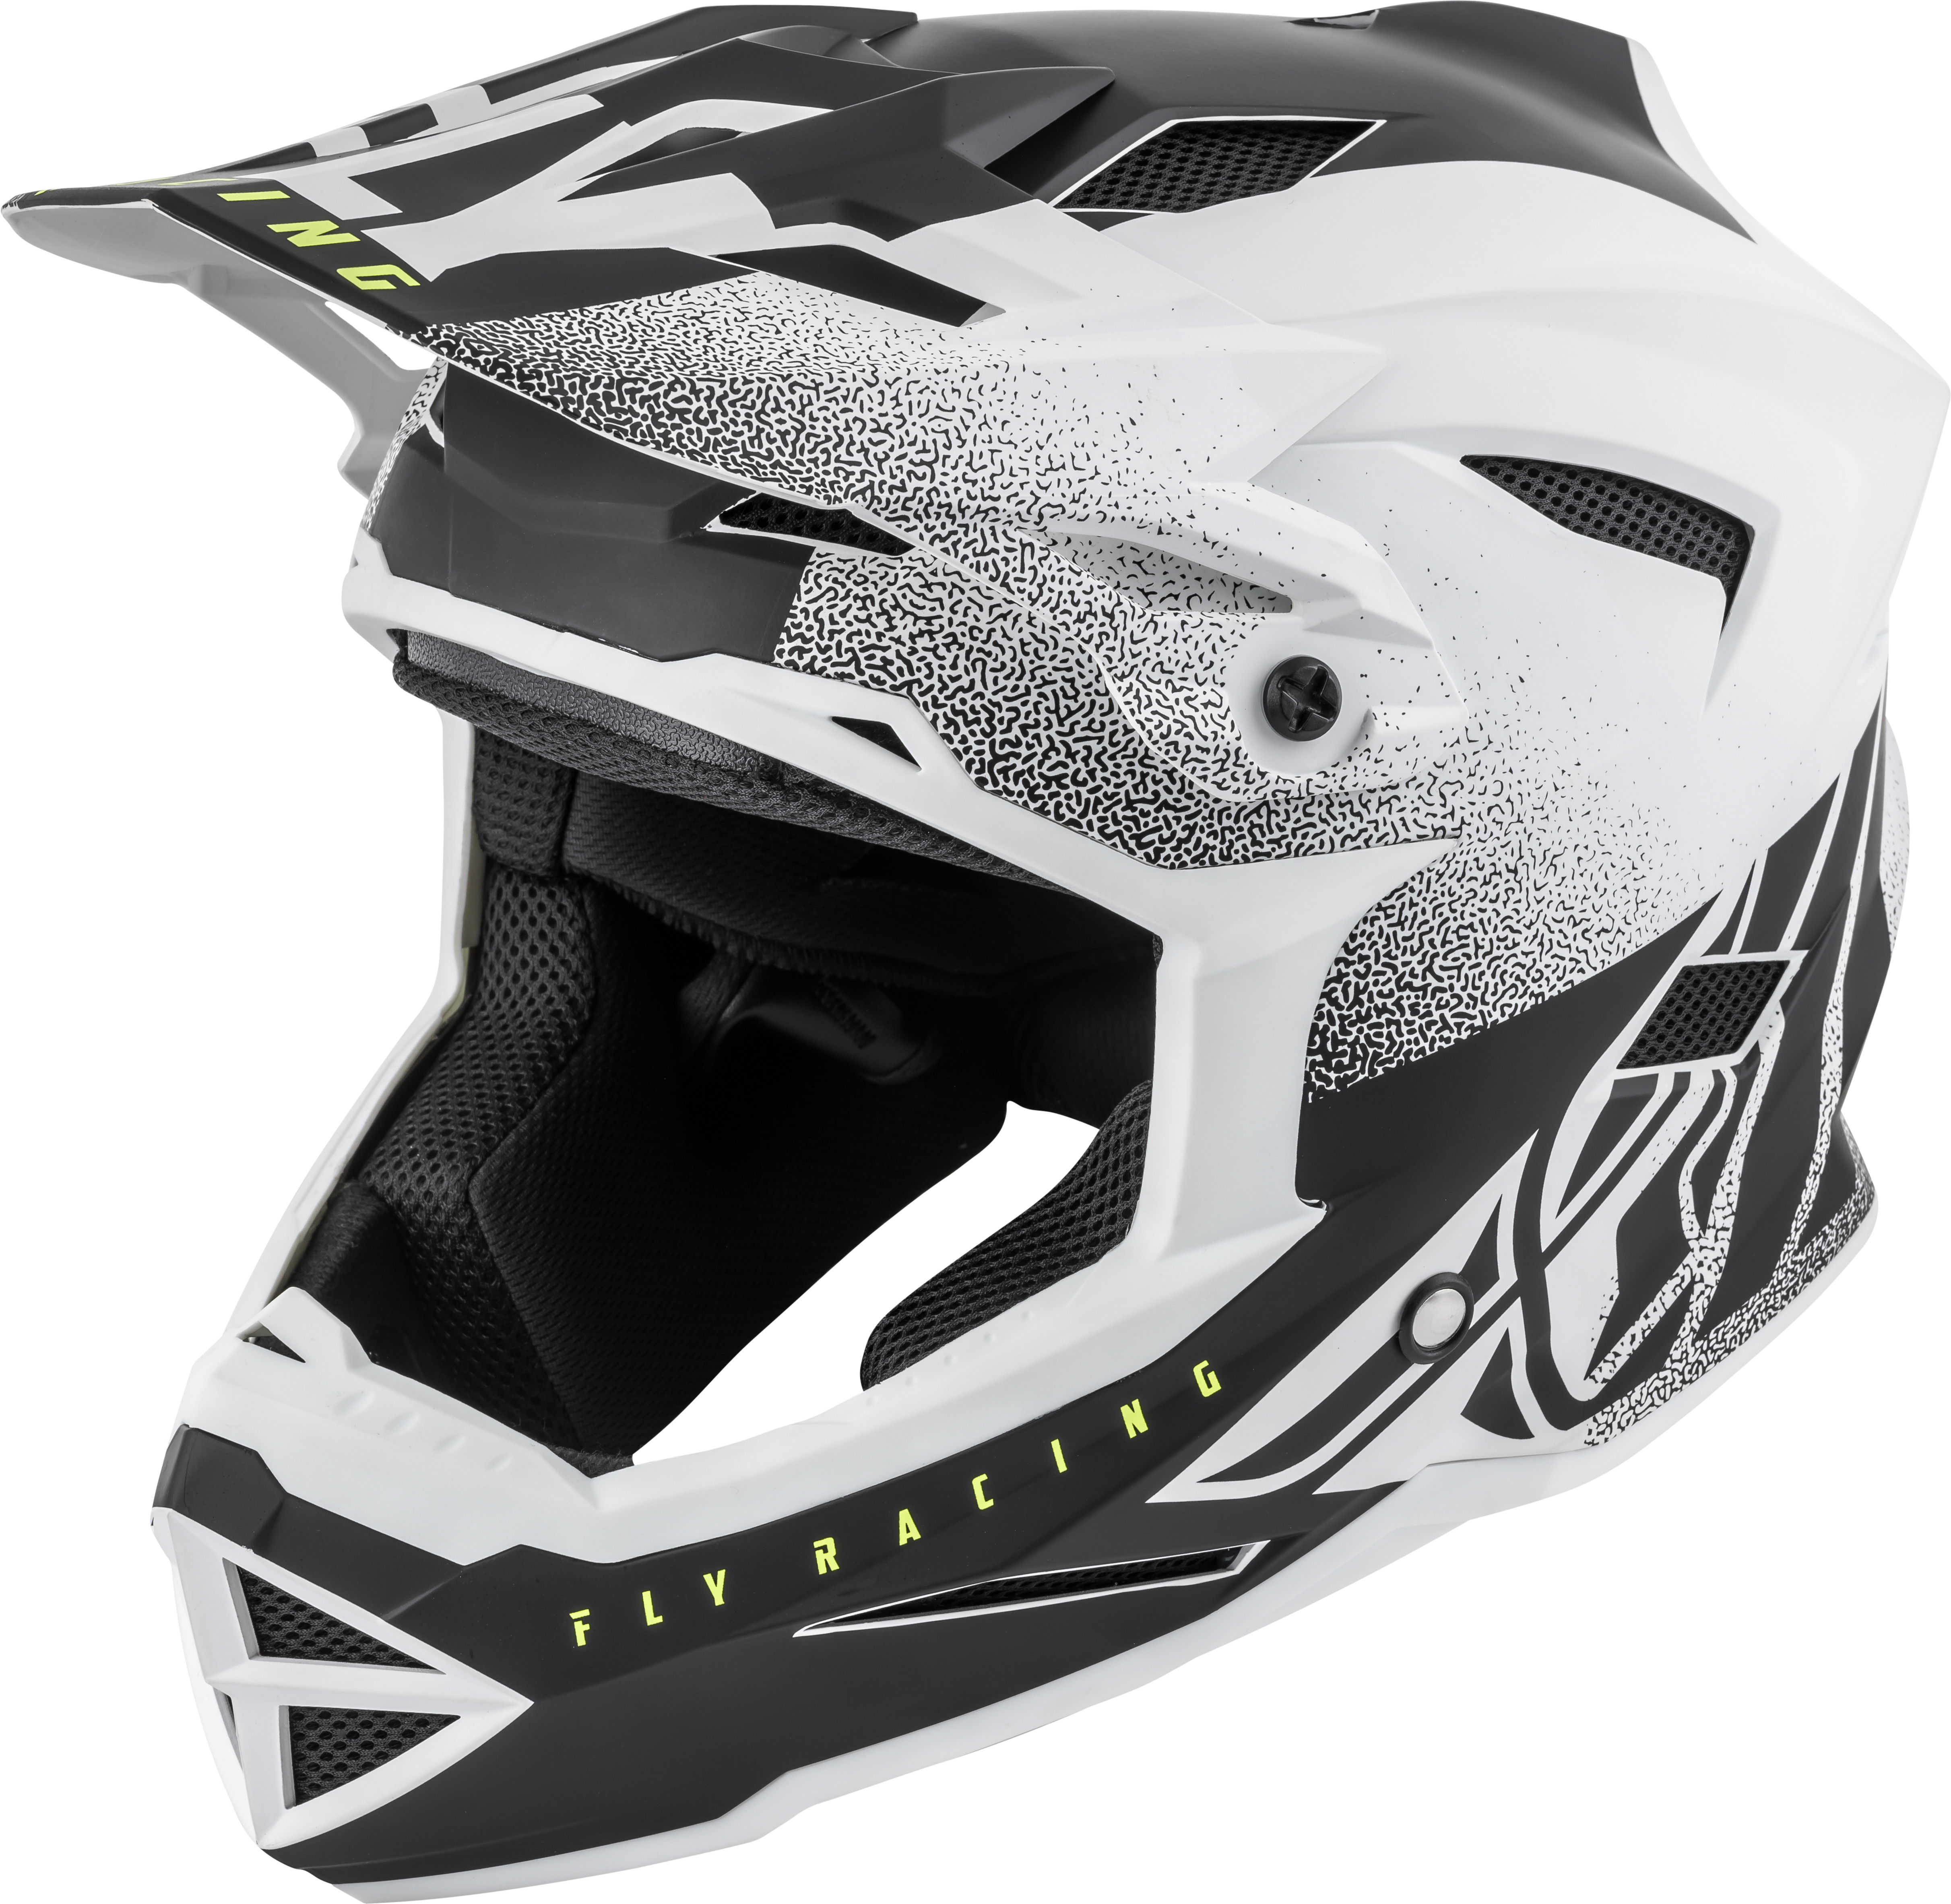 73-9171L Fly Racing Default Helmet Matte White/Black Lg